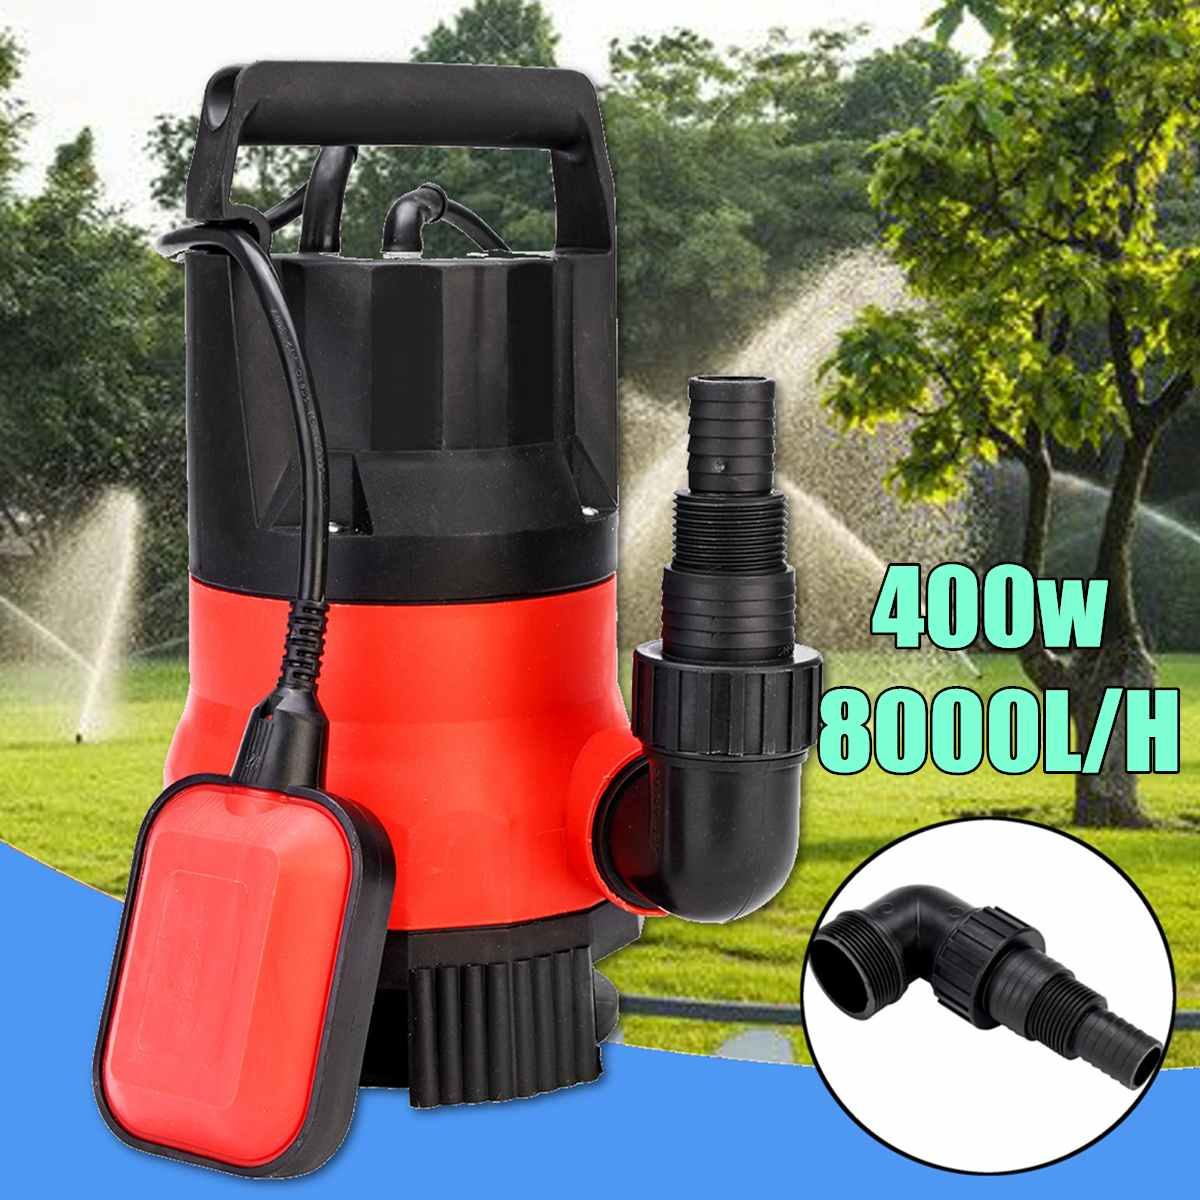 400W Electric Submersible Pump Garden Pond Dirty Flood Water Cleaning Tools Pool Drainage Irrigation Aquaculture Pumps Parts400W Electric Submersible Pump Garden Pond Dirty Flood Water Cleaning Tools Pool Drainage Irrigation Aquaculture Pumps Parts